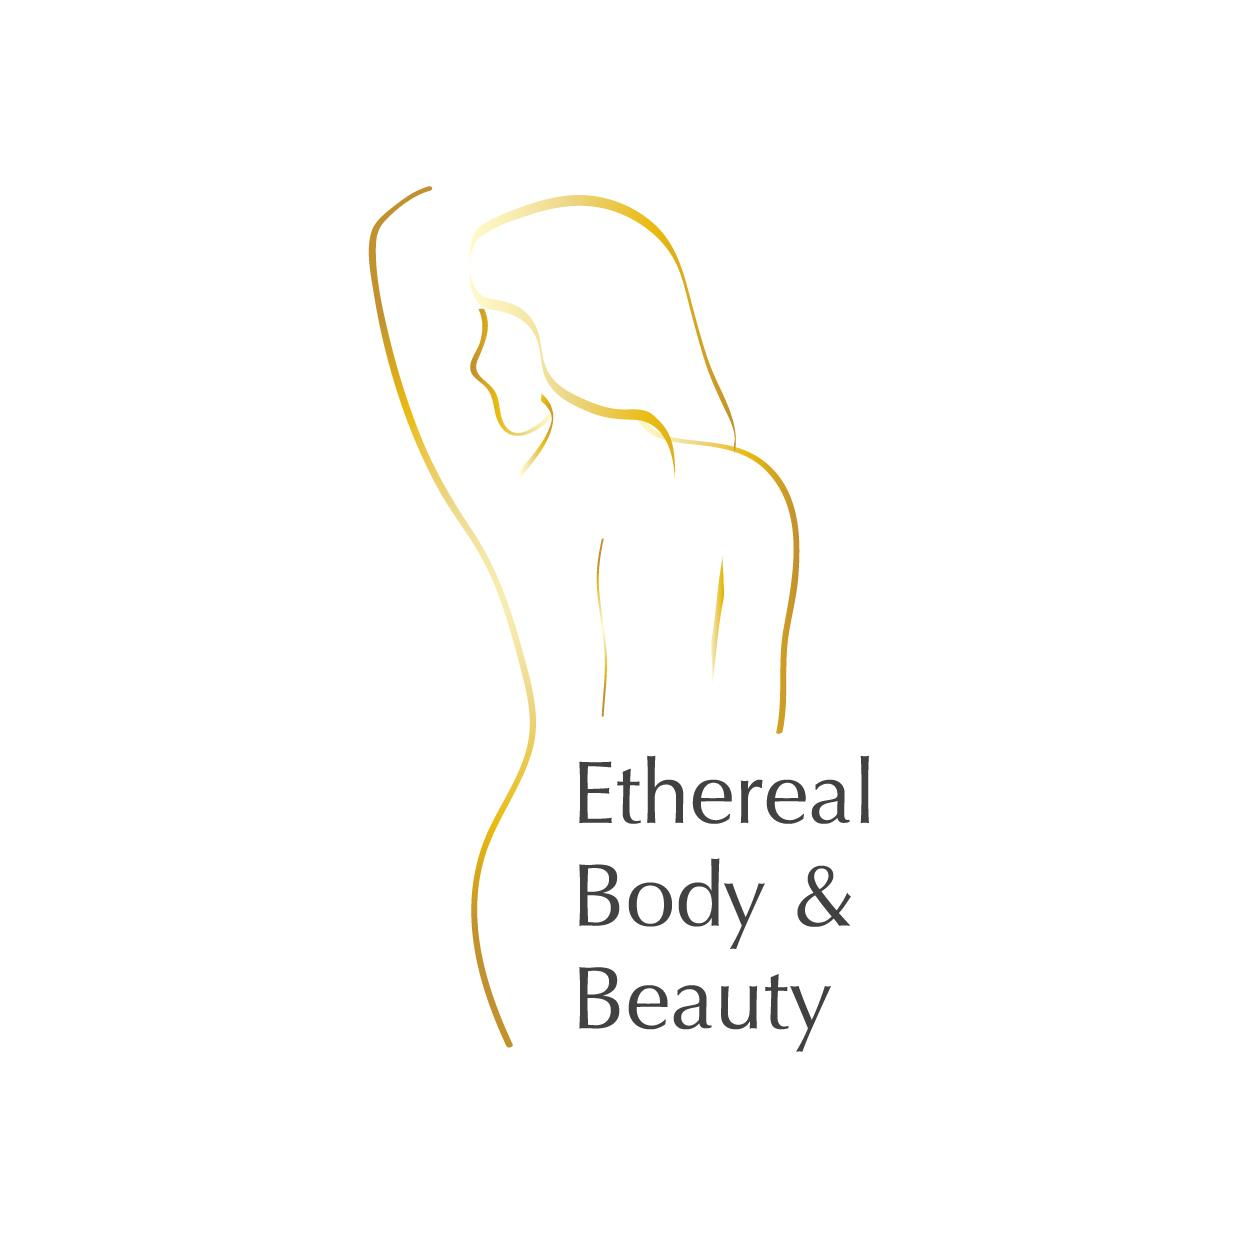 Ethereal Body and Beauty